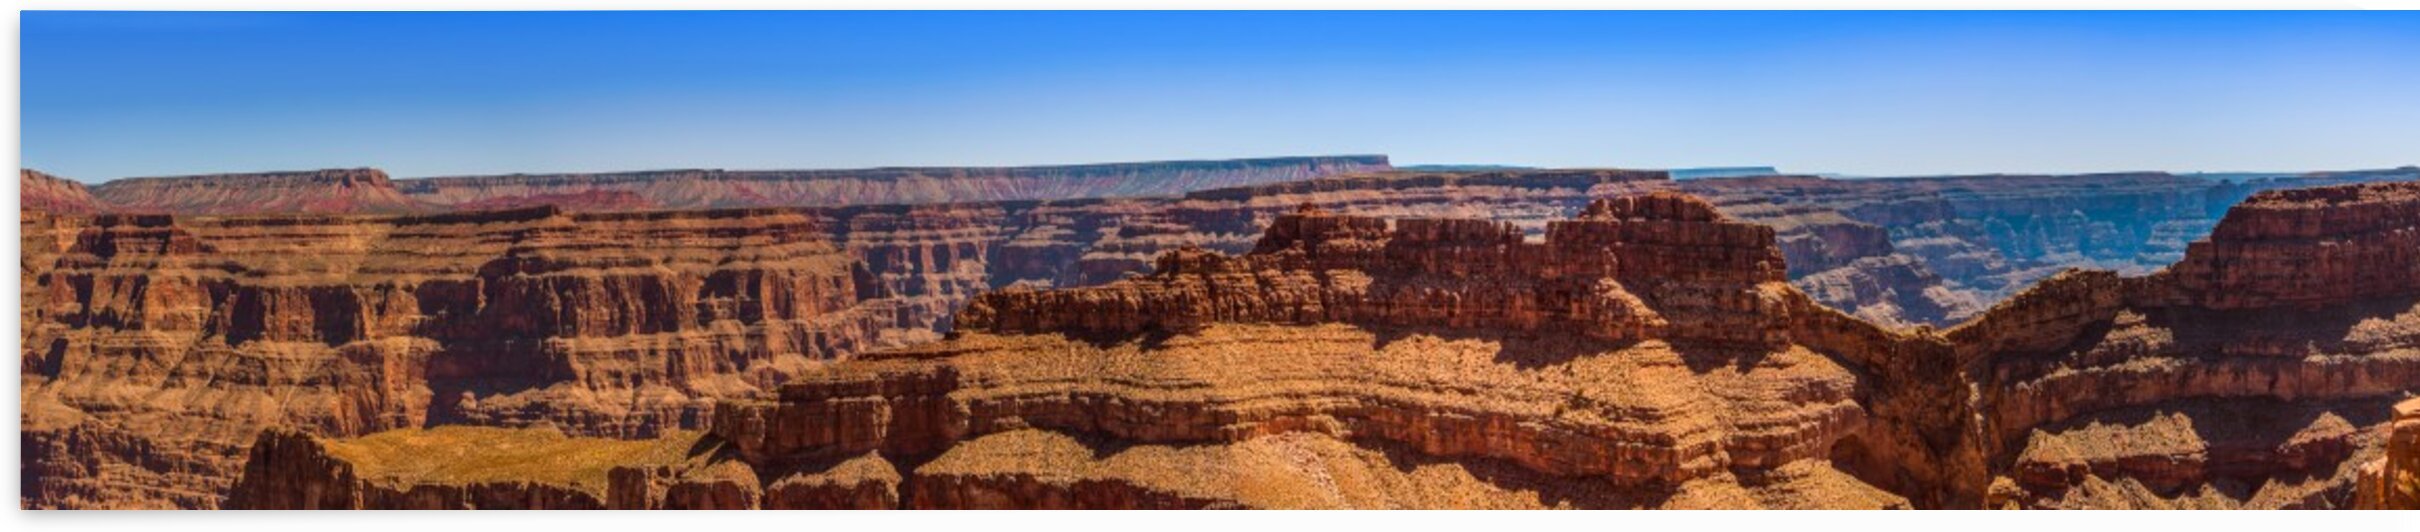 Grand Canyon Panorama Landscape Very Large by Bobby Twilley Jr